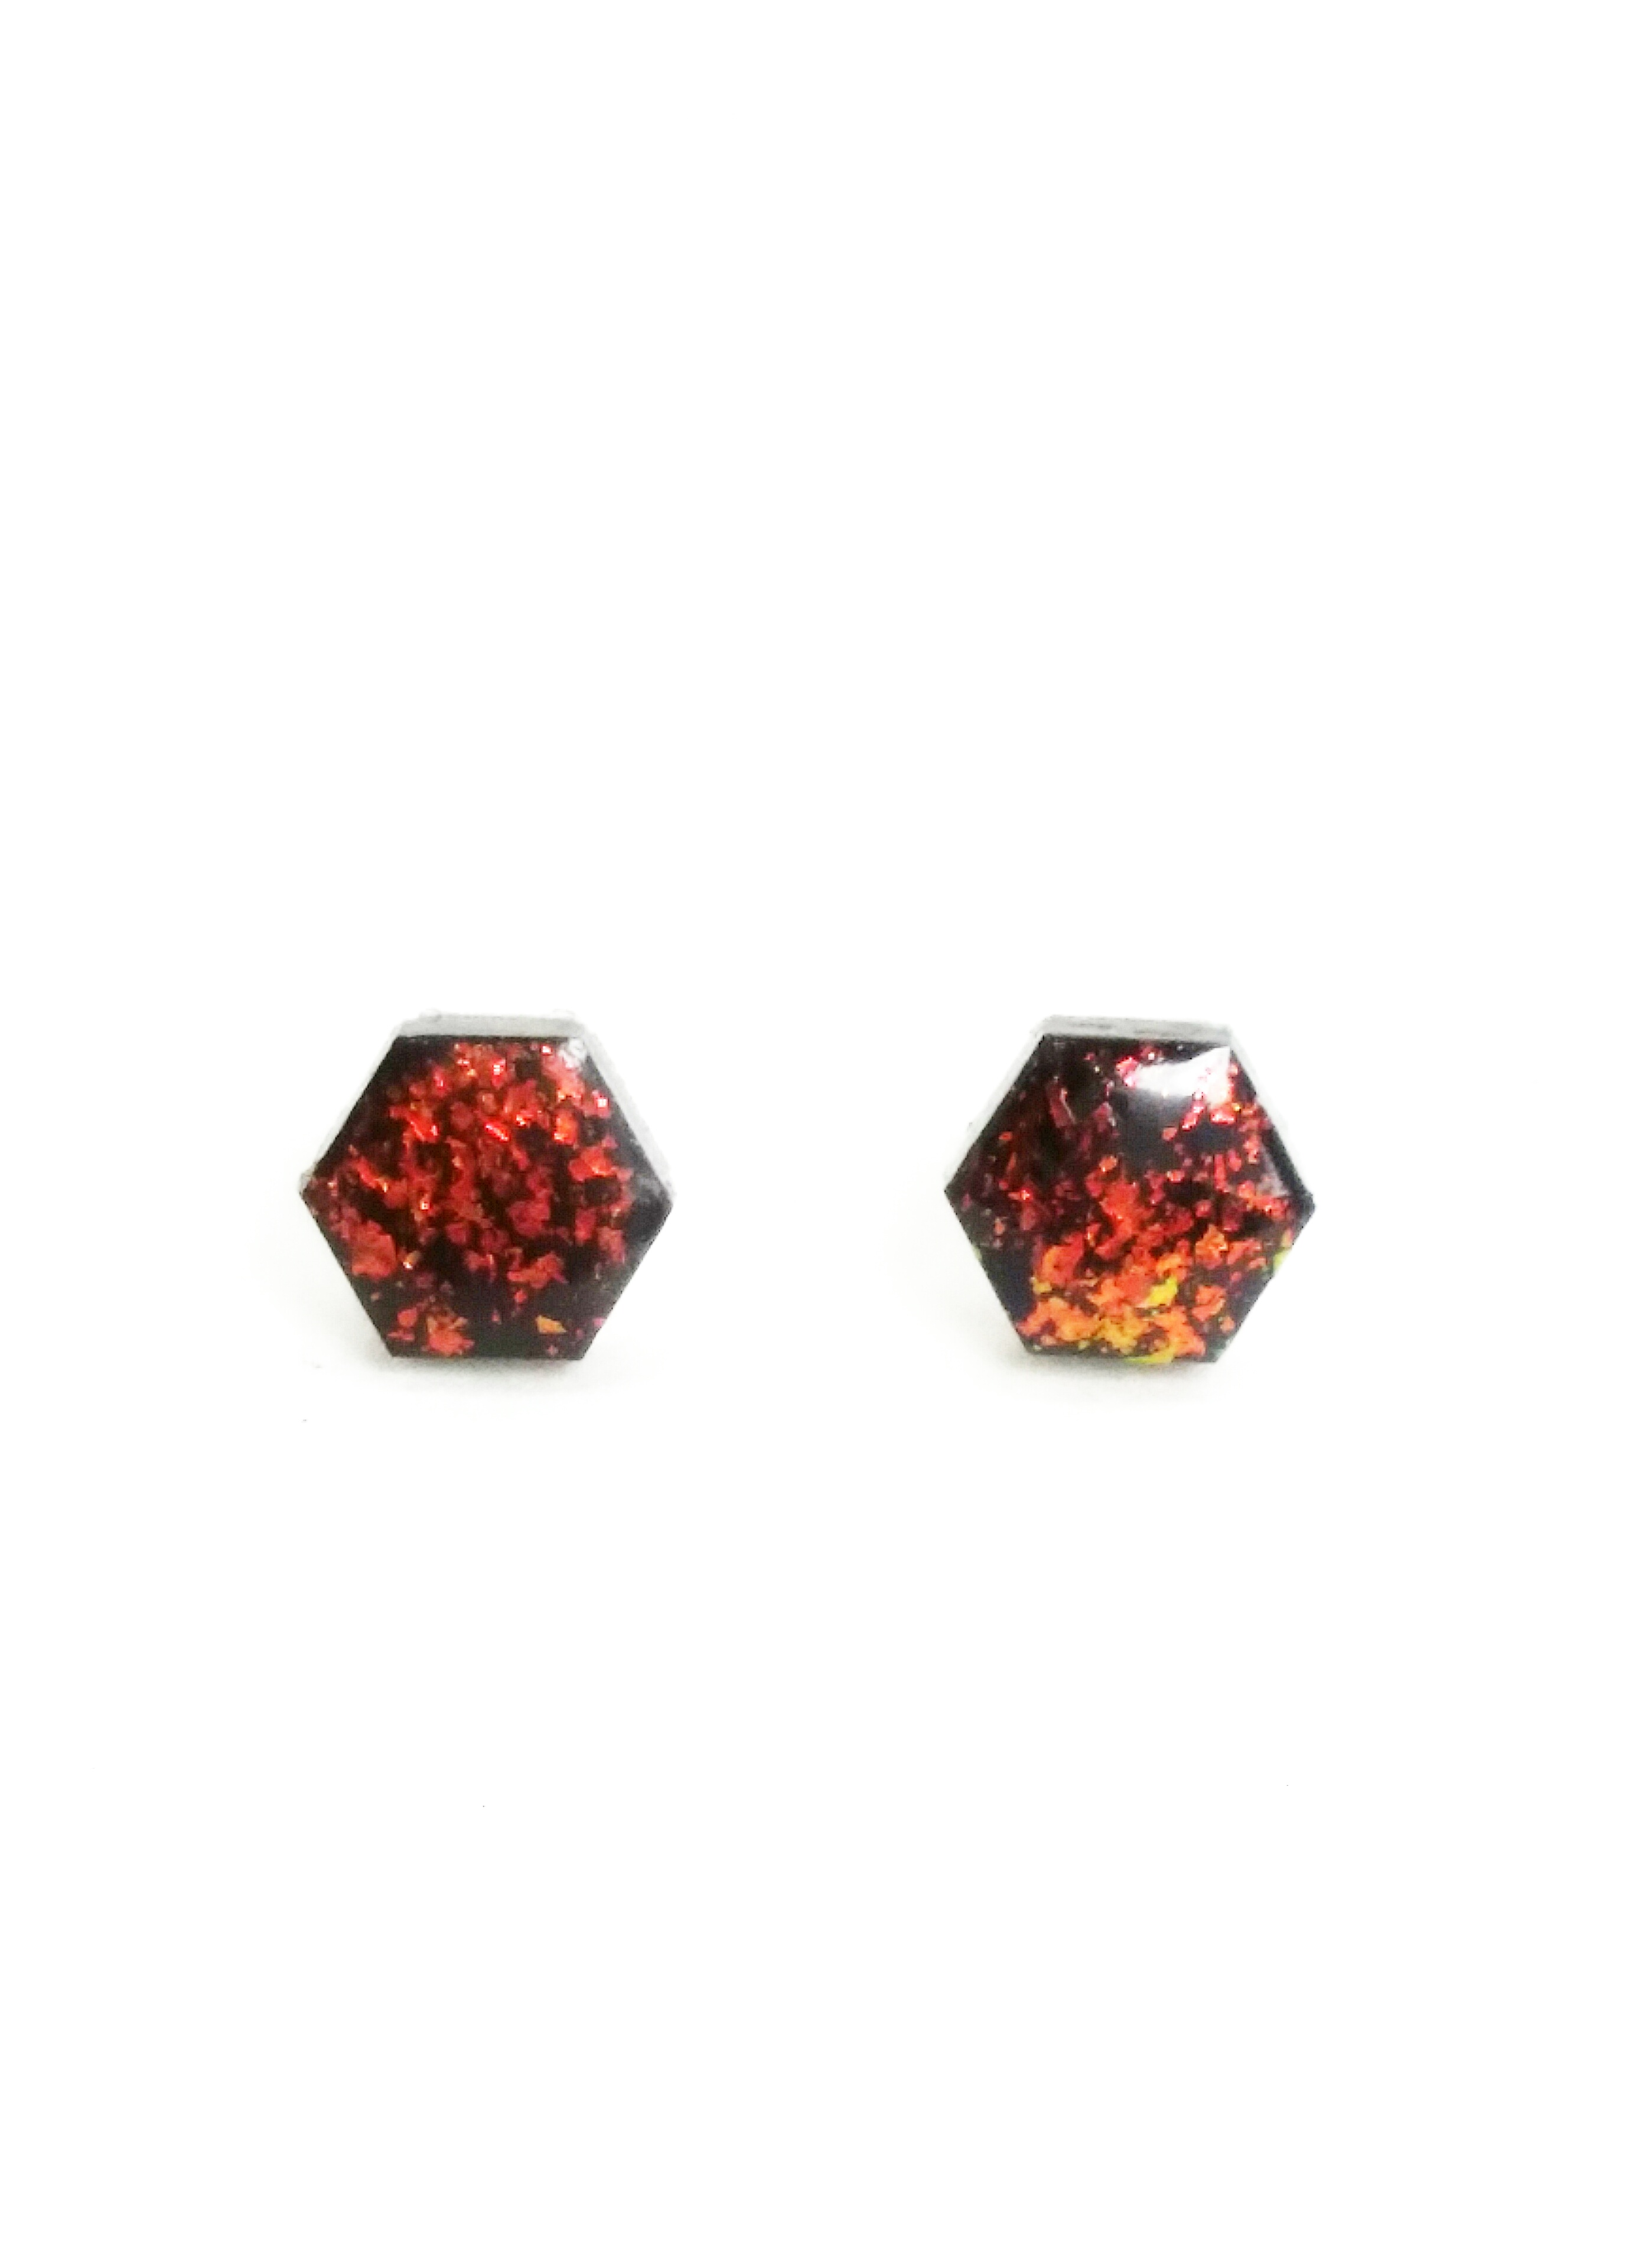 65884c1da Fire Opal Hex Earrings Faux Opalescent Black Hexagon Post Stud Earrings